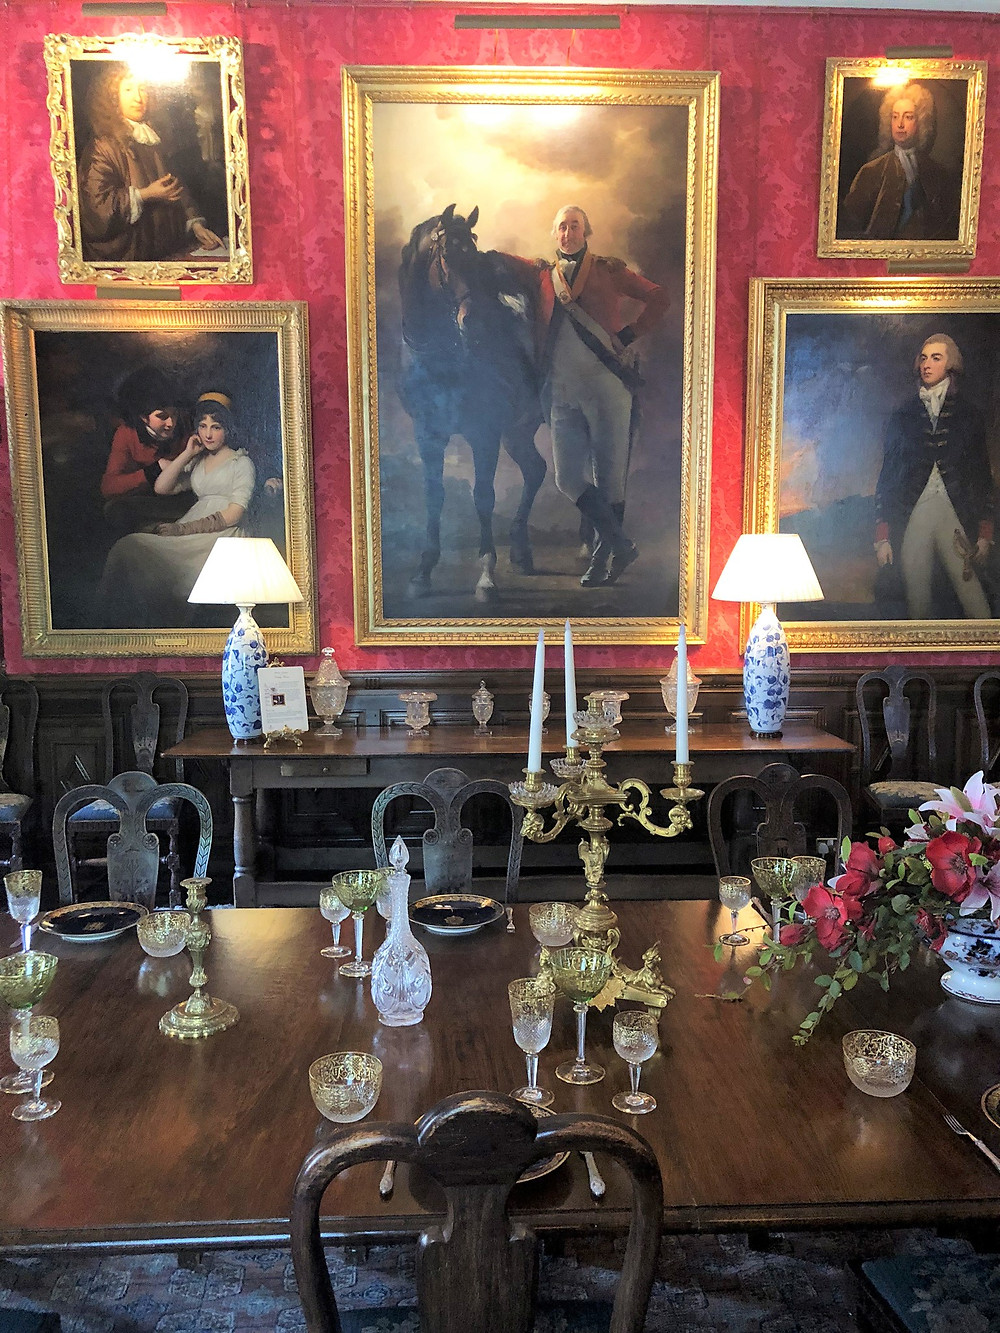 Paintings in the family dining room above dining room table in Fyvie Castle in Aberdeenshire, Scotland